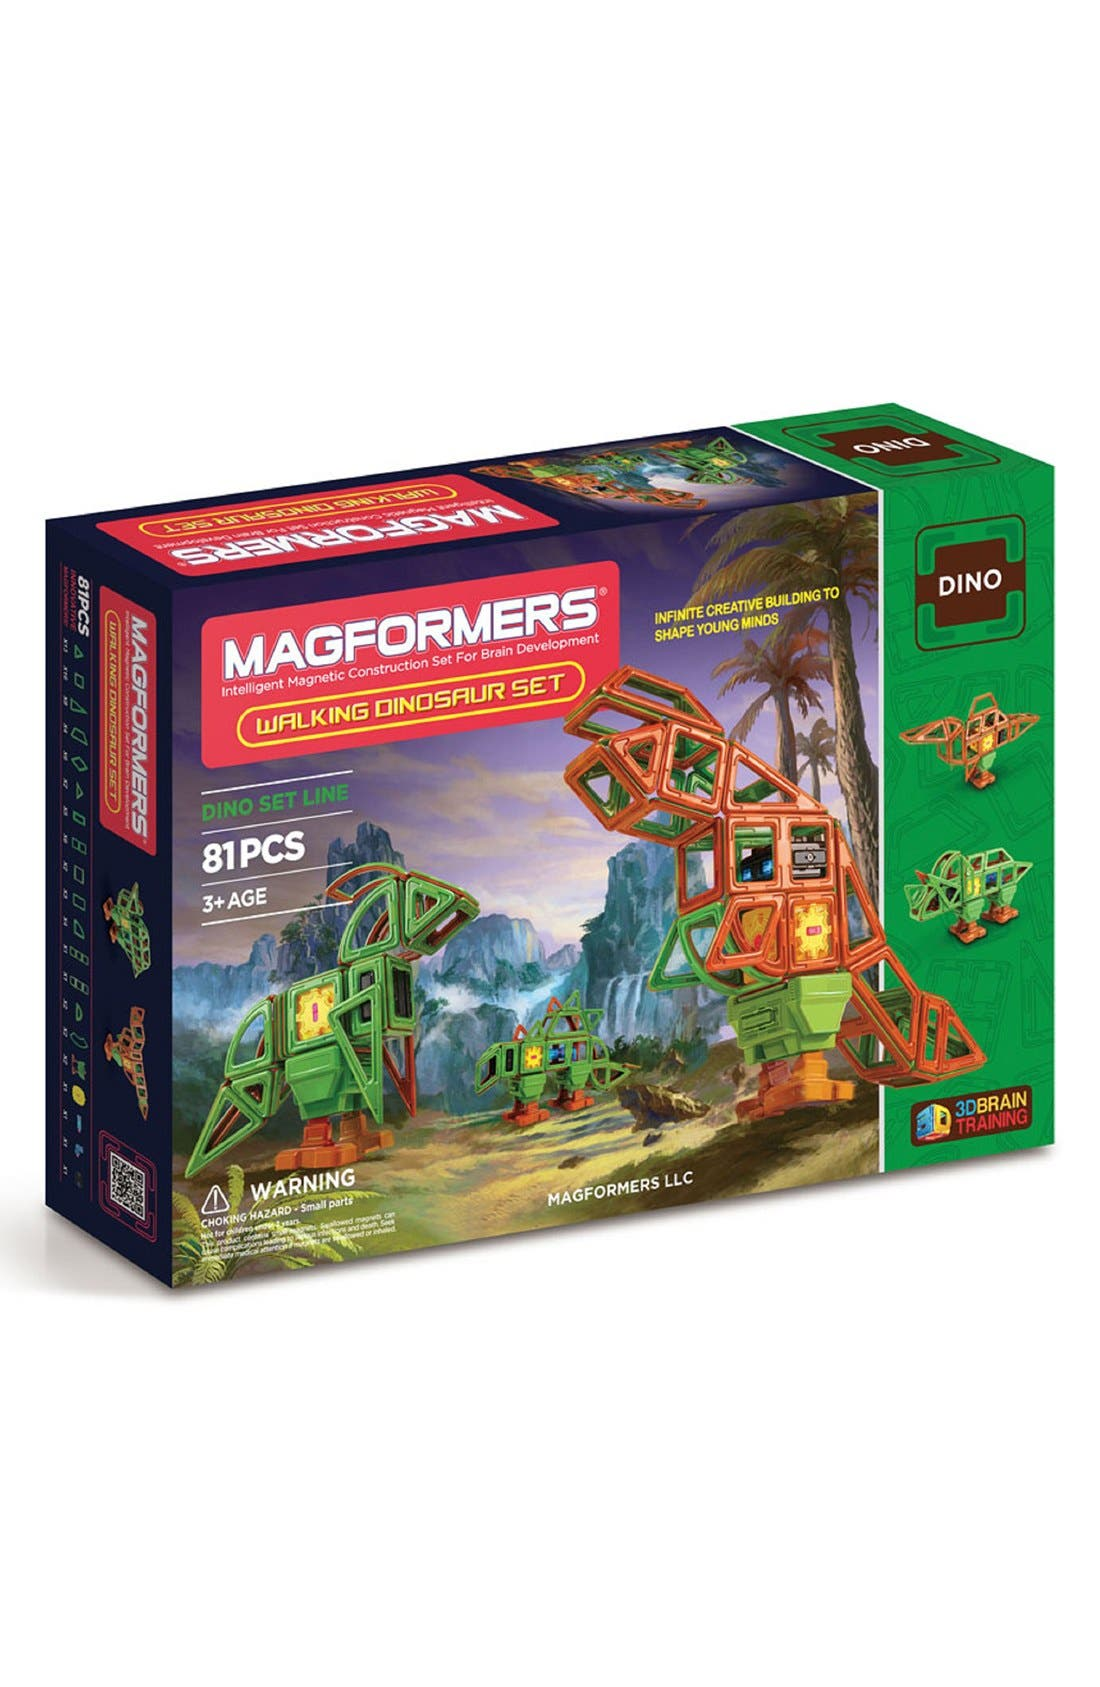 'Walking Dinosaur' Wind-Up Toy Magnetic Construction Set,                             Main thumbnail 1, color,                             Green/ Brown